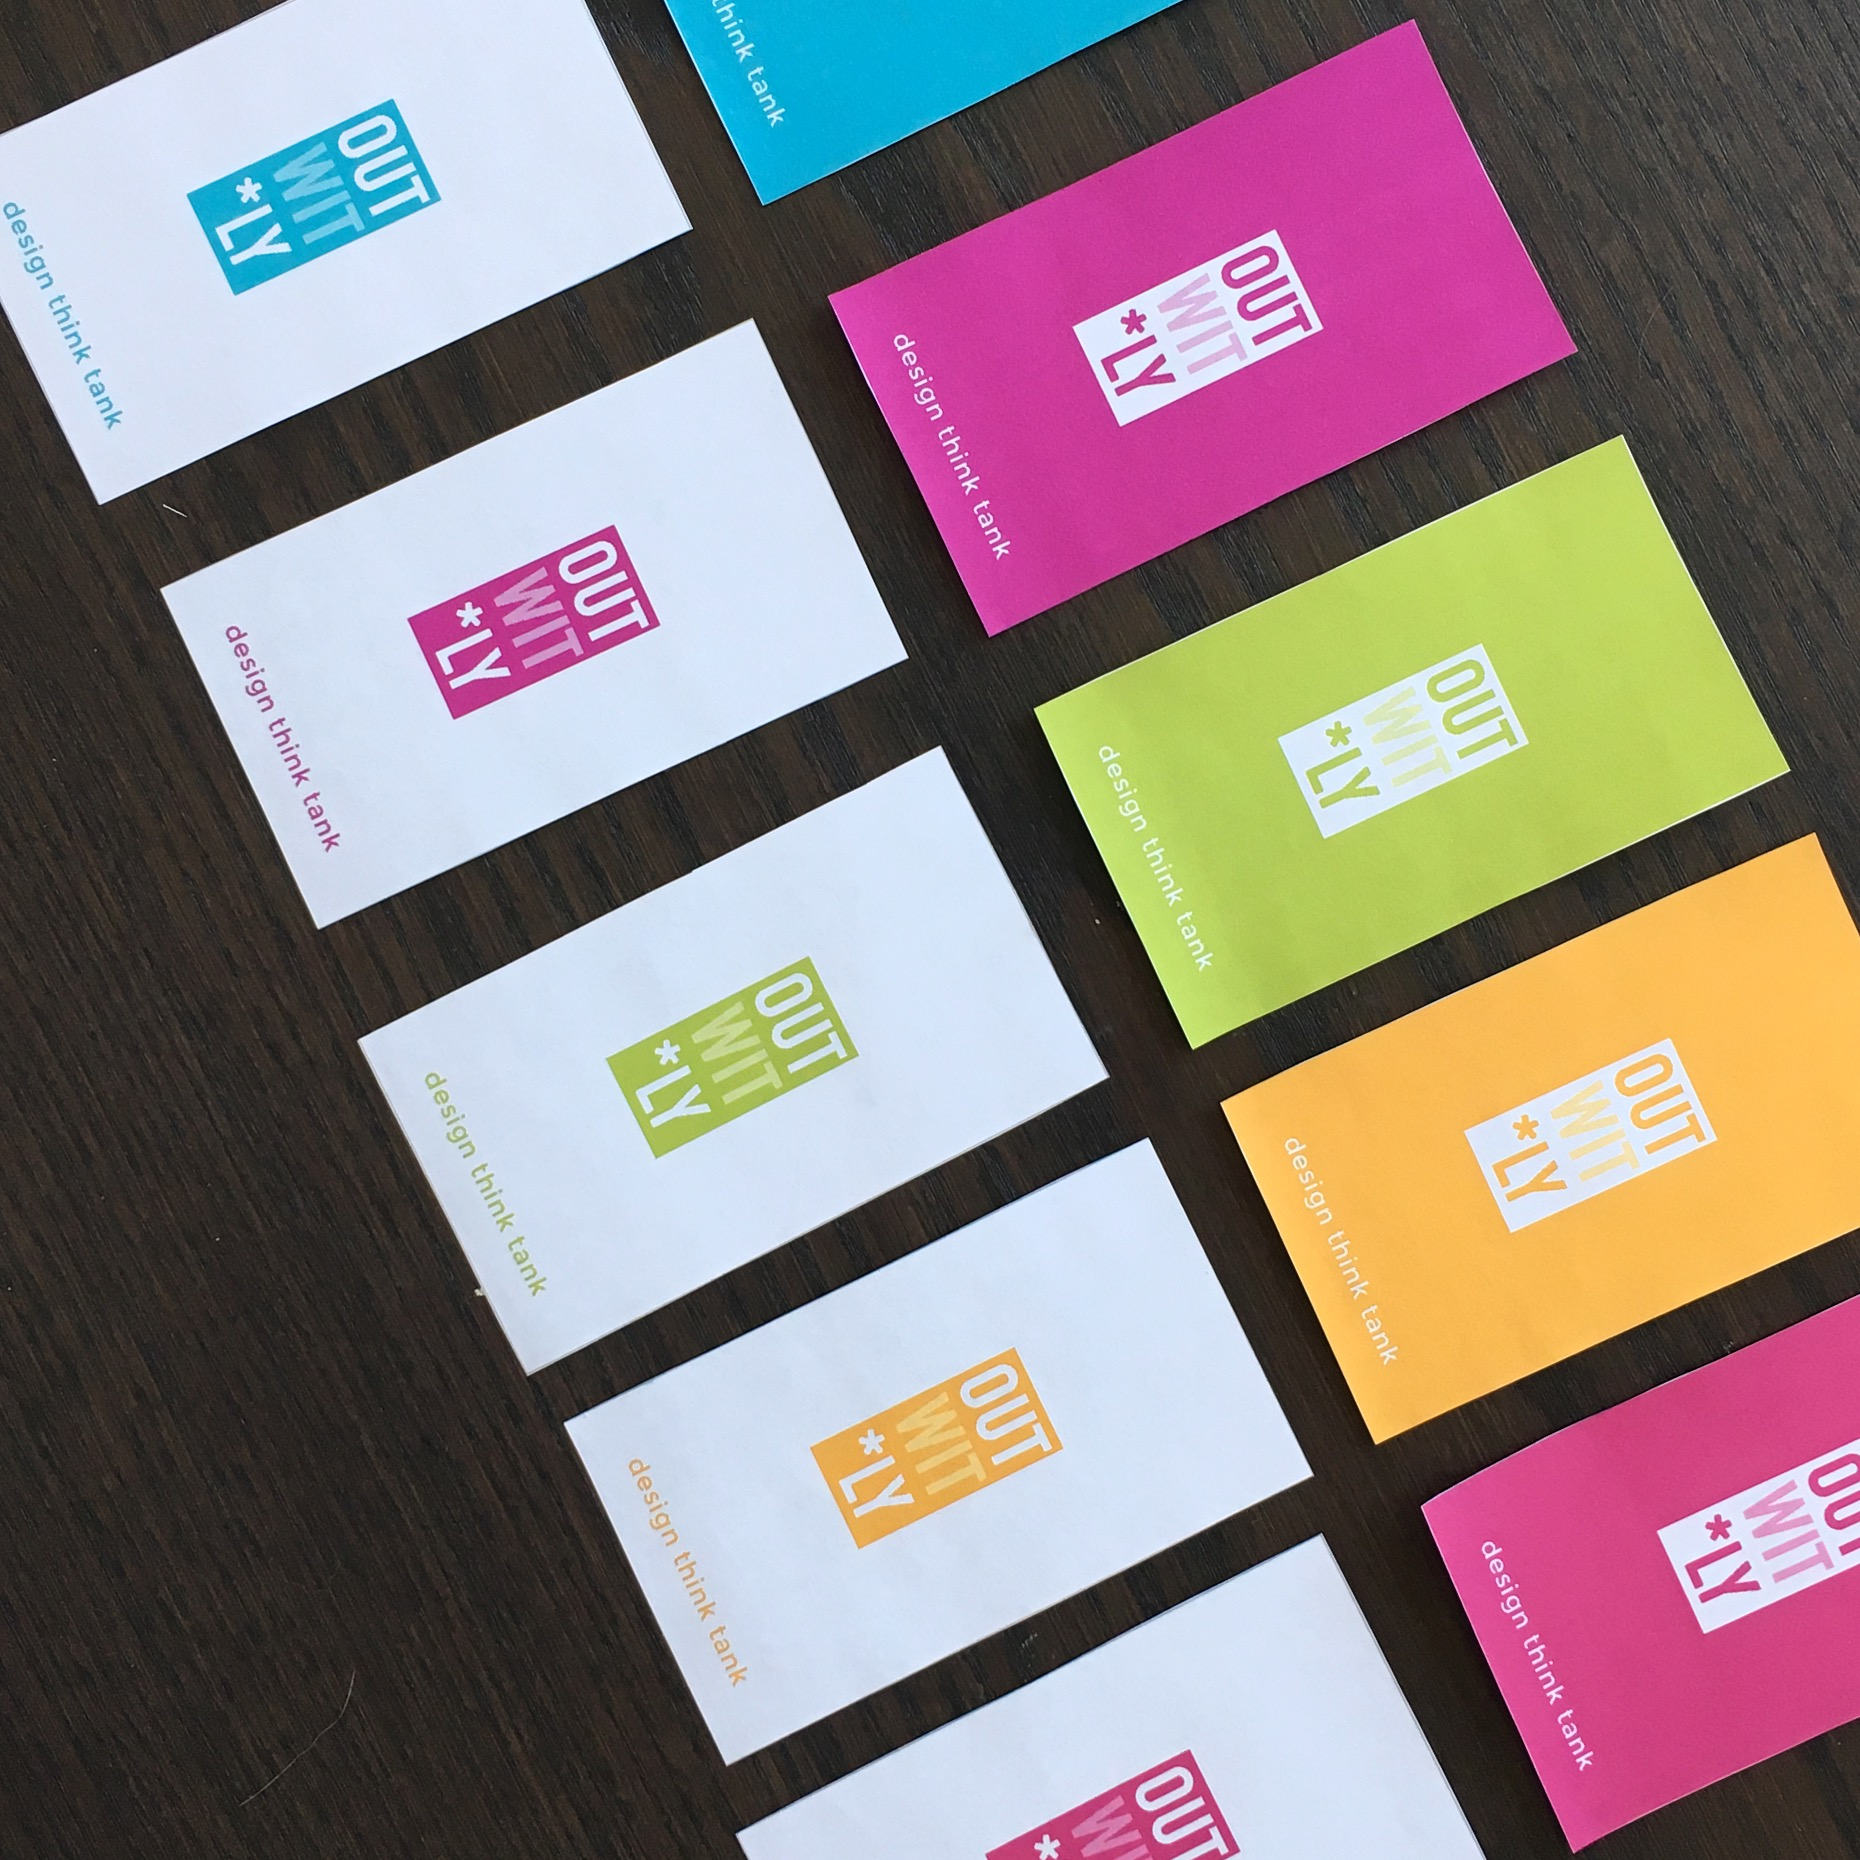 Colourful business cards.